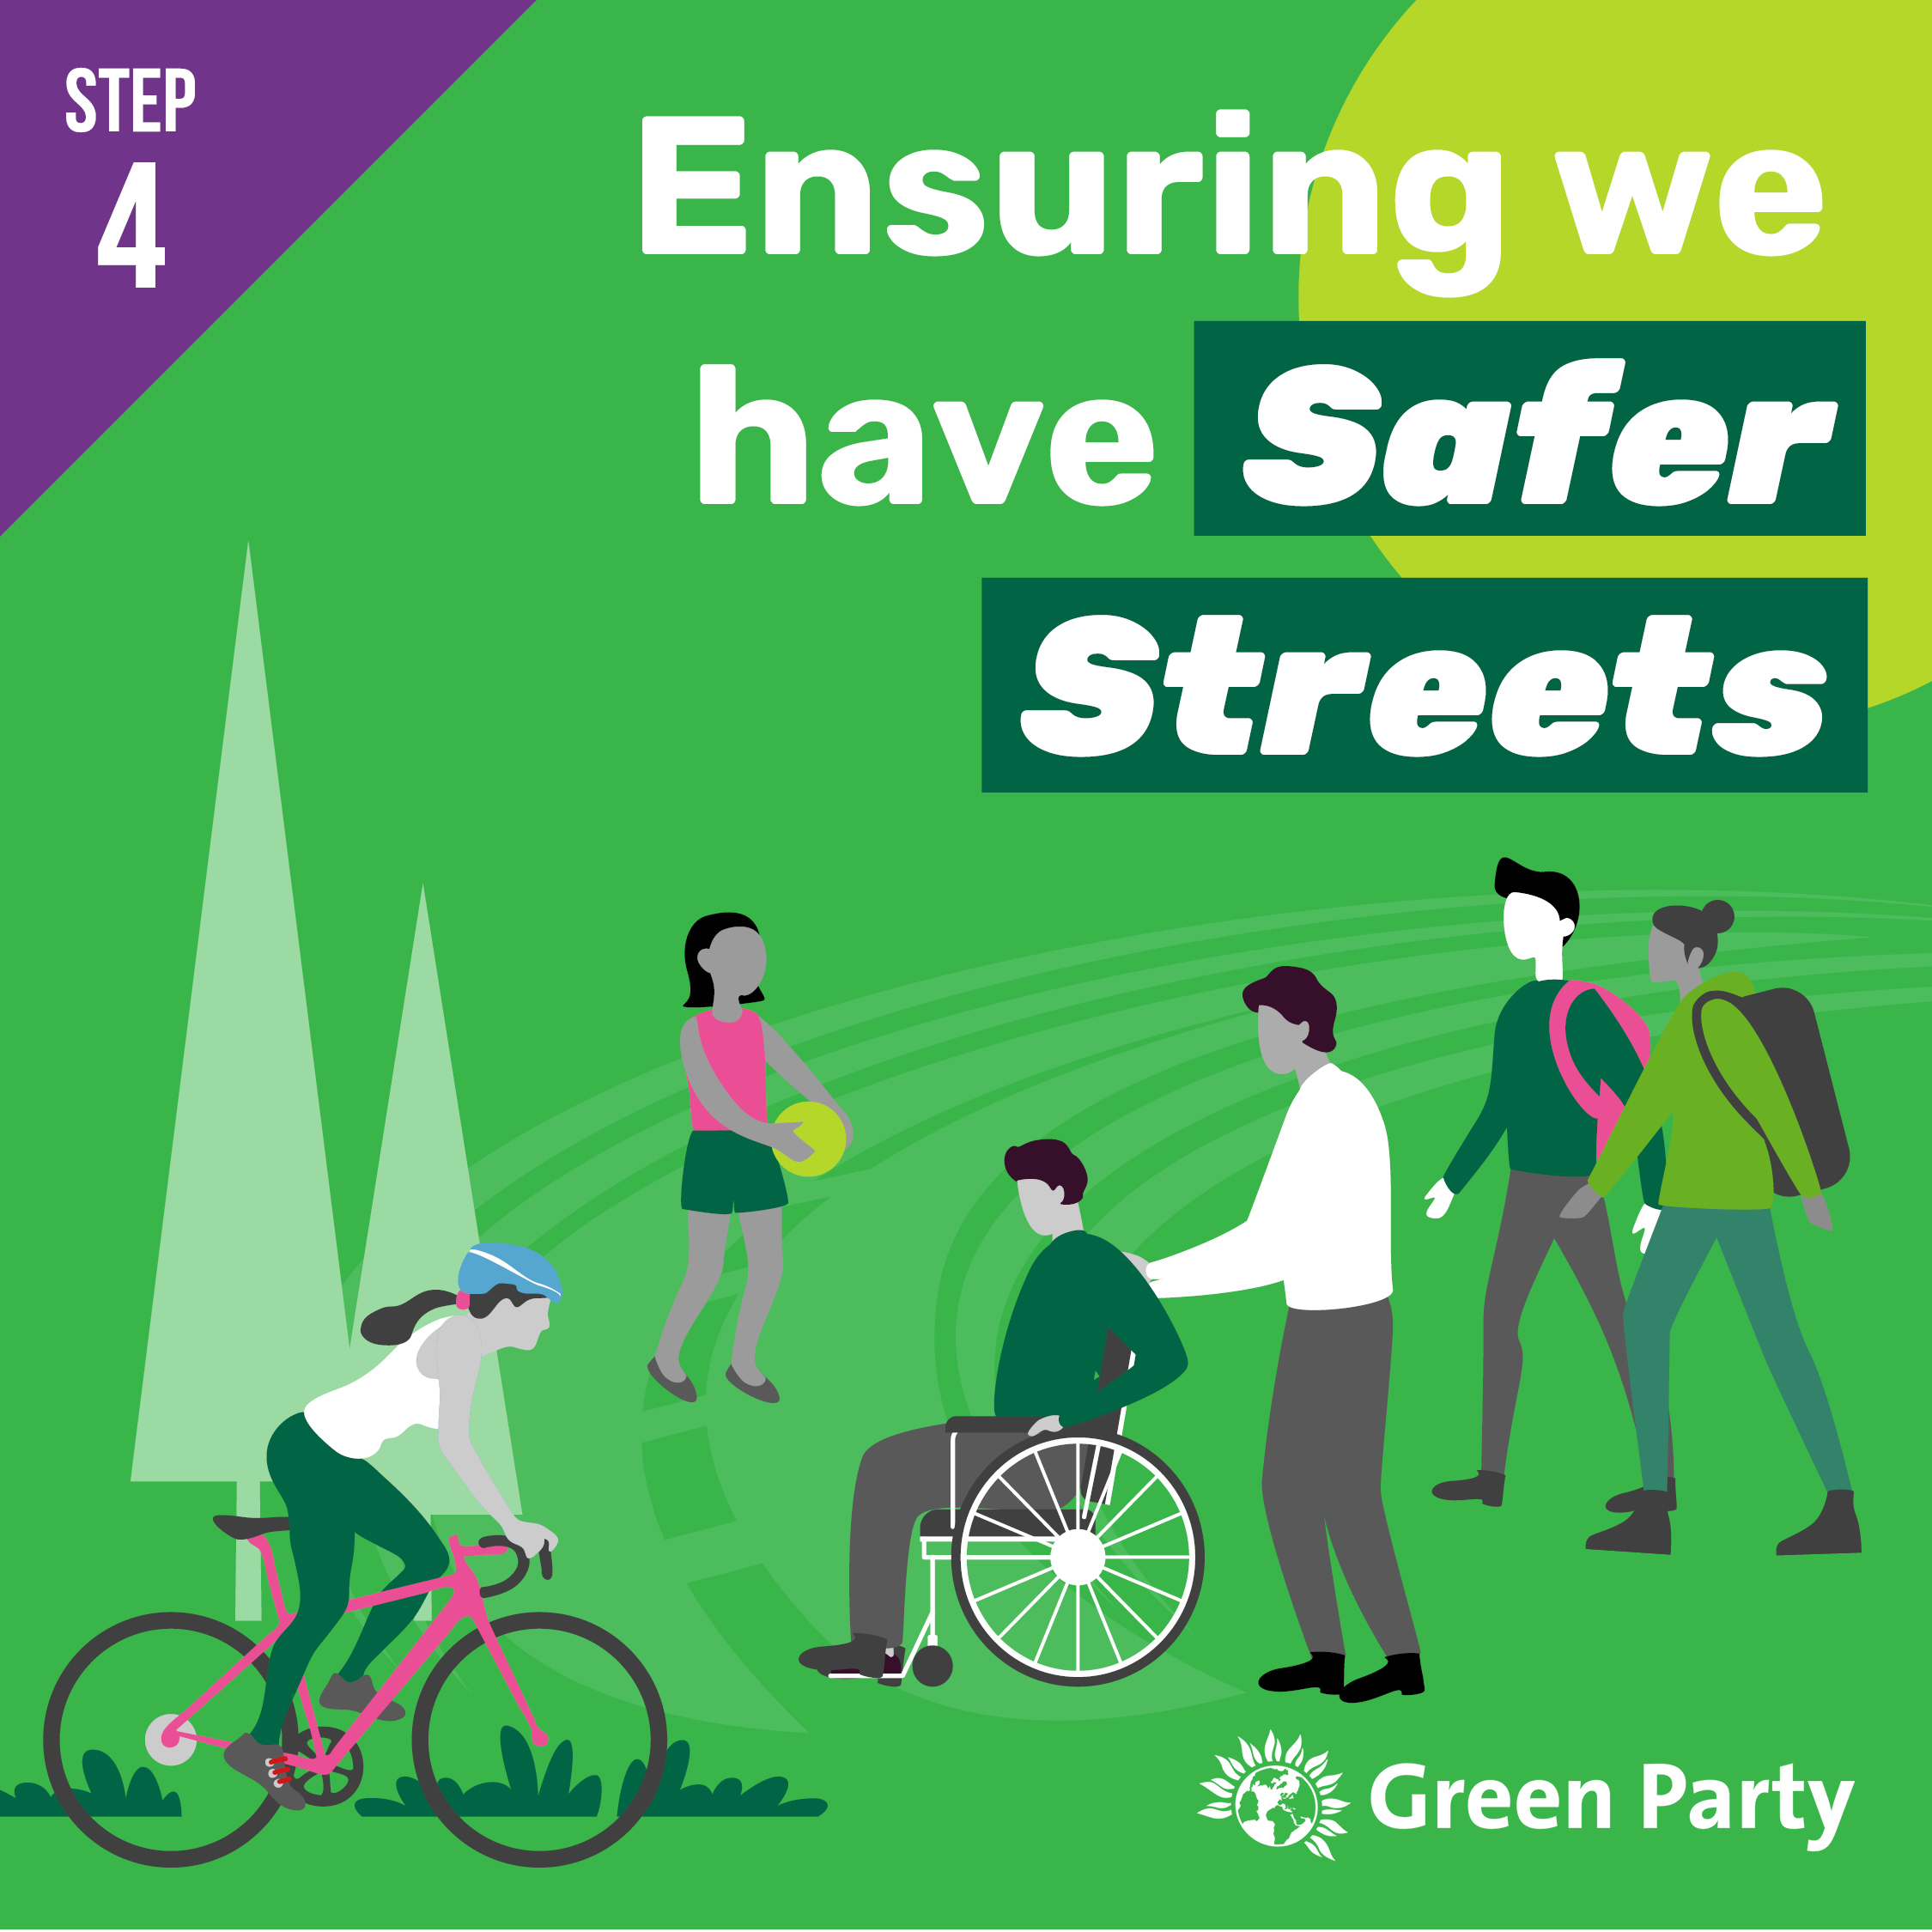 Step 4 - Safer Streets [Facebook & Instagram]